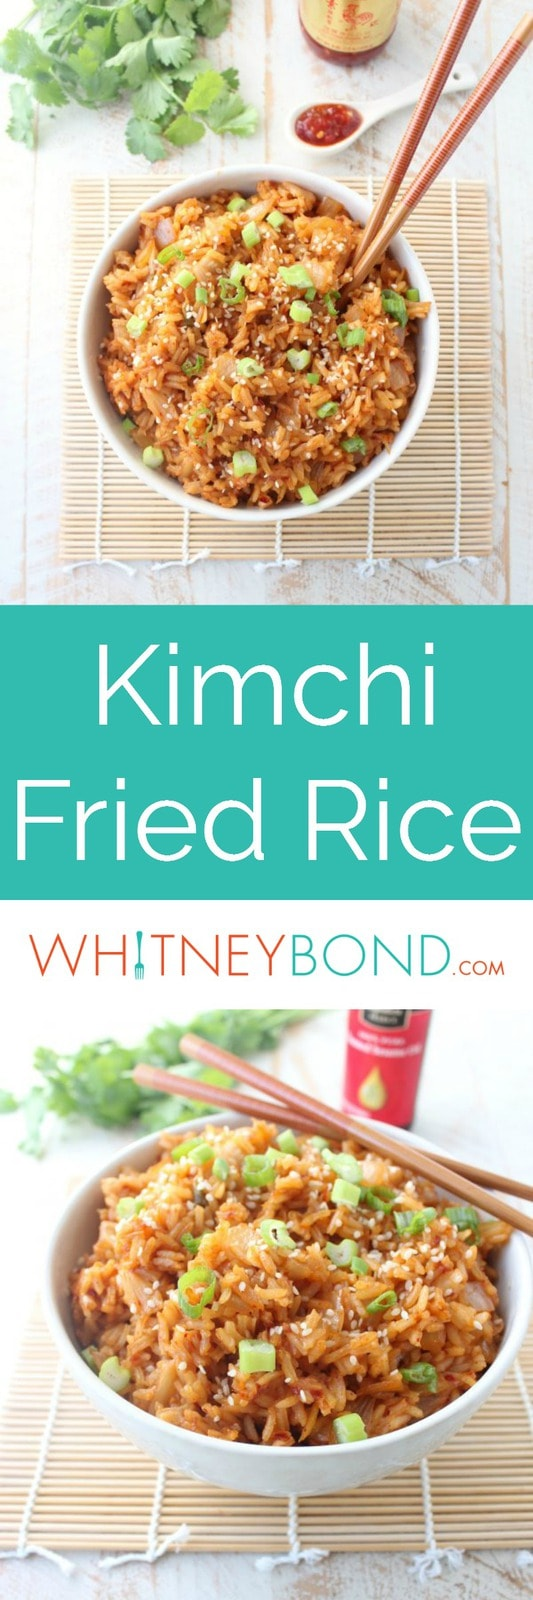 Kimchi Fried Rice is a delicious Korean recipe made in just 15 minutes, serve as a vegetarian entree, or as a side dish with Korean BBQ Short Ribs!